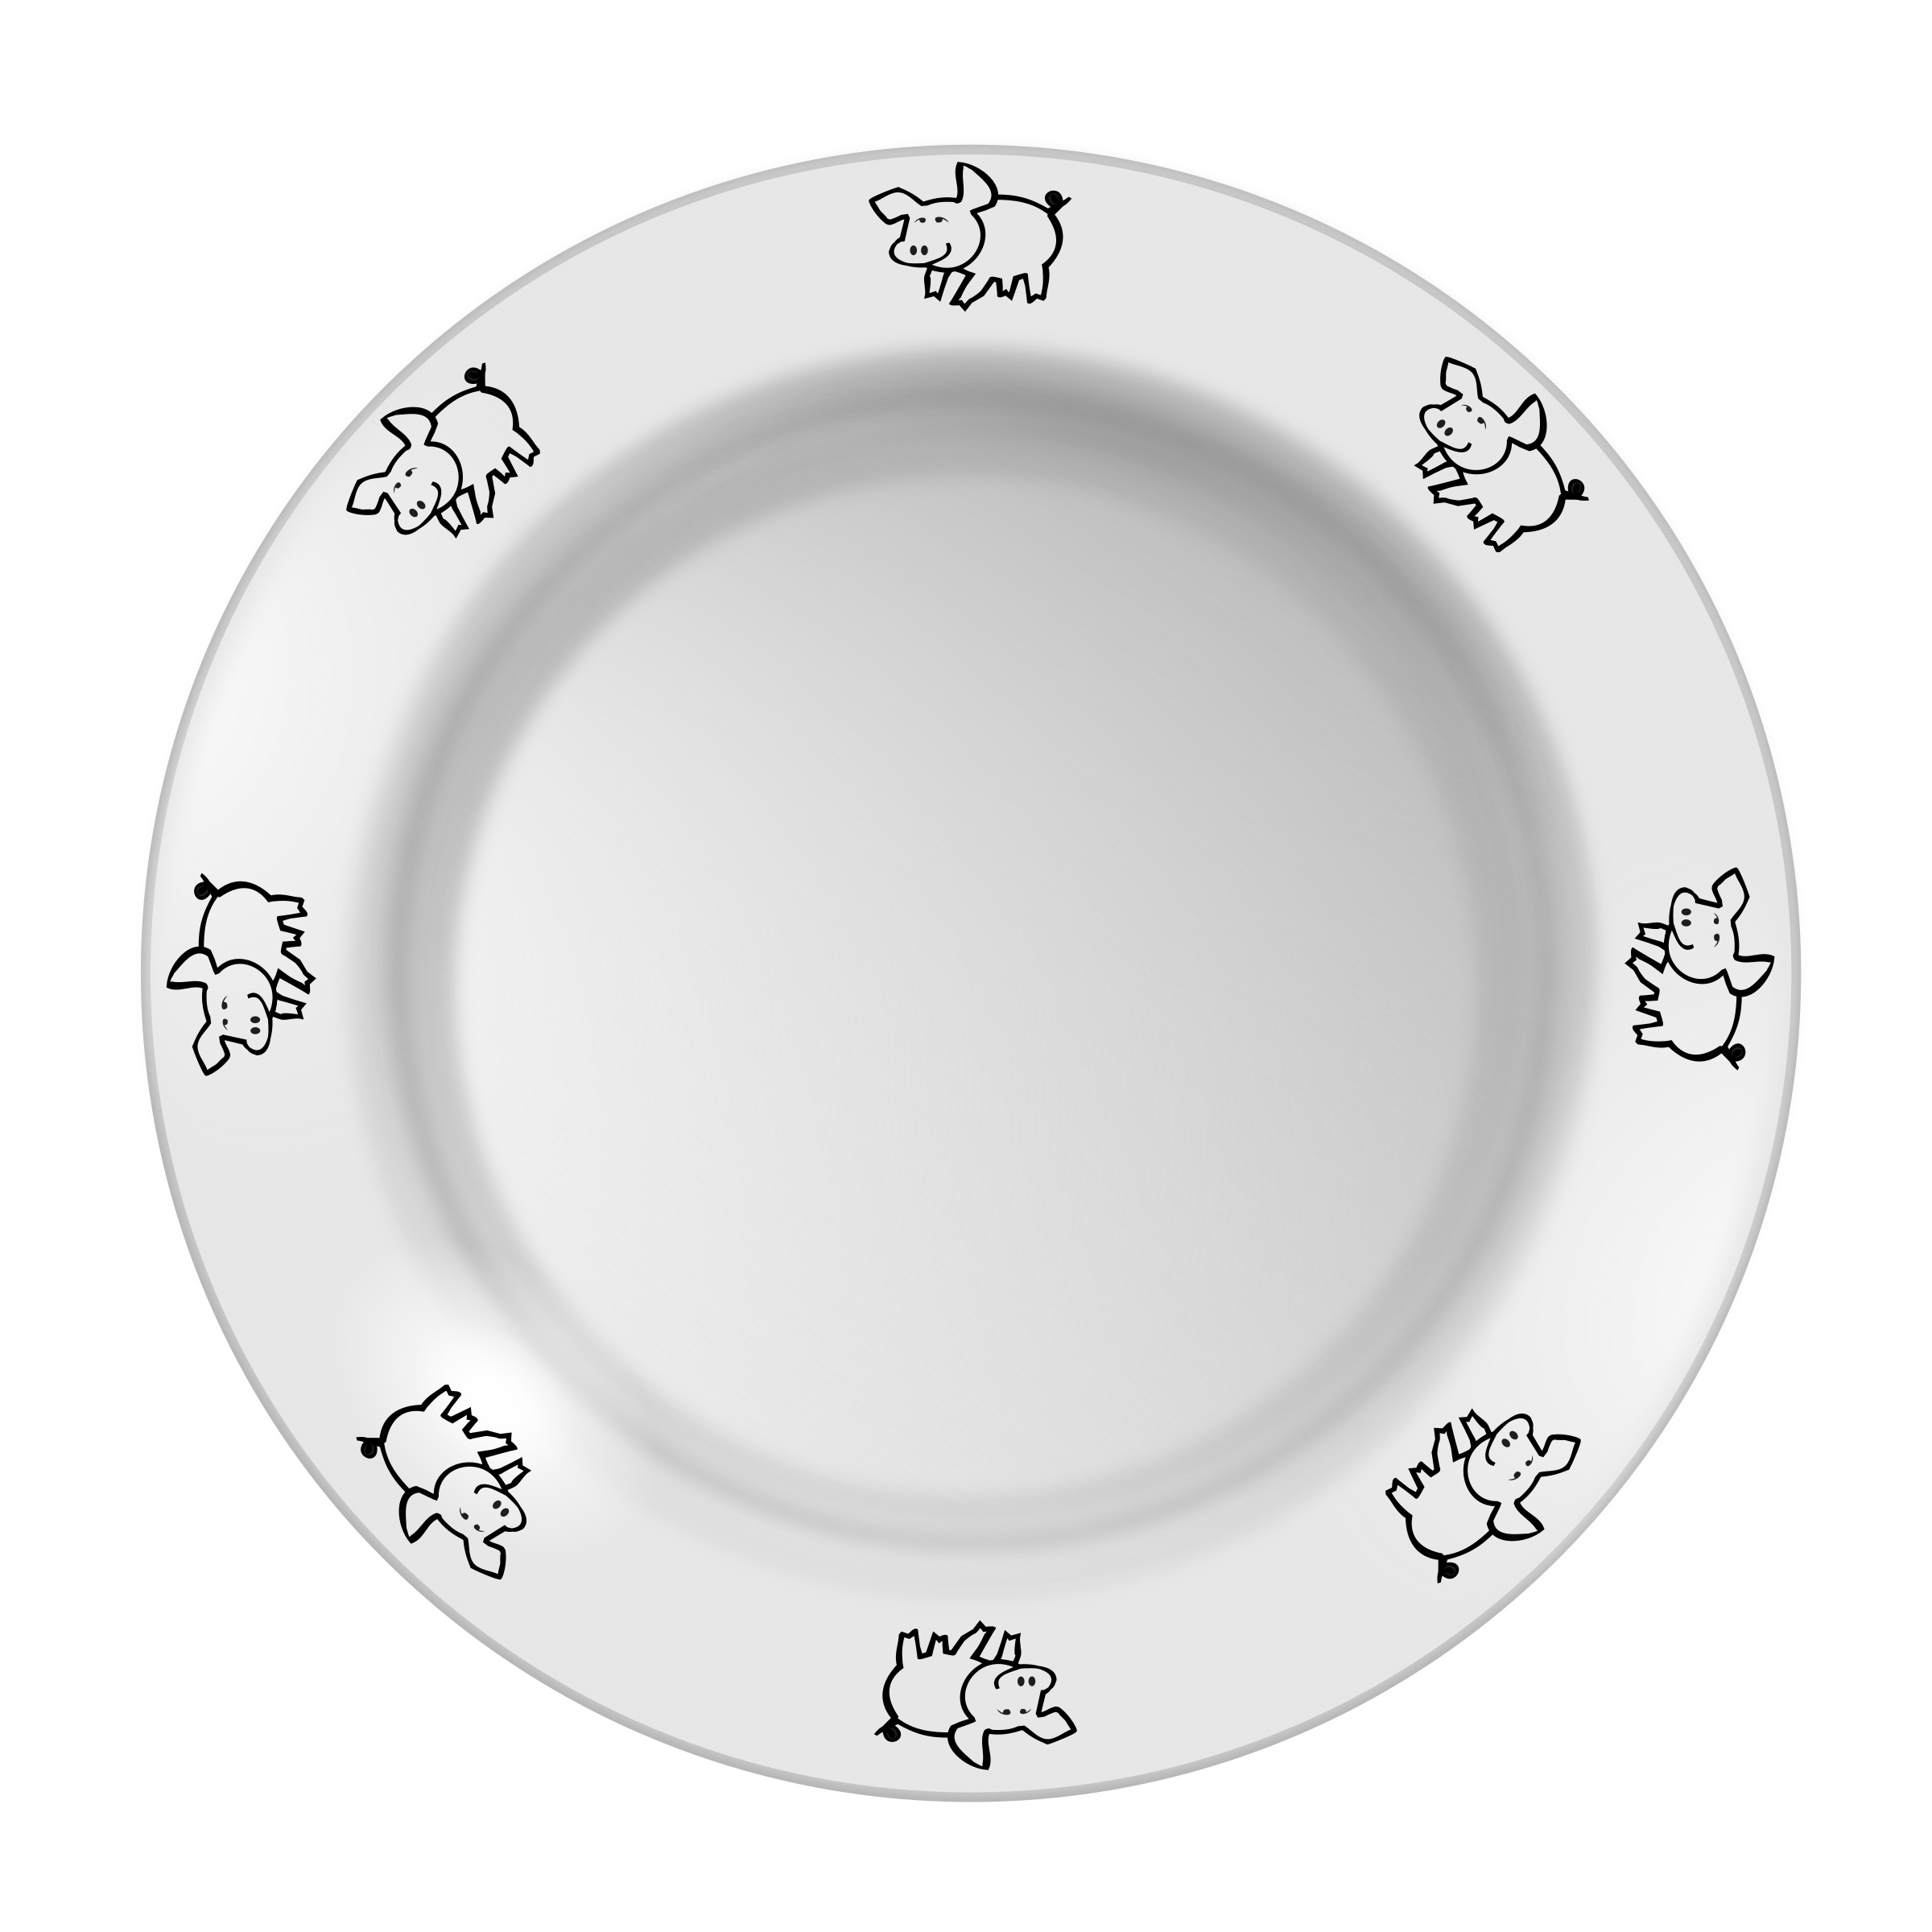 Plate with pig pattern by yamachem